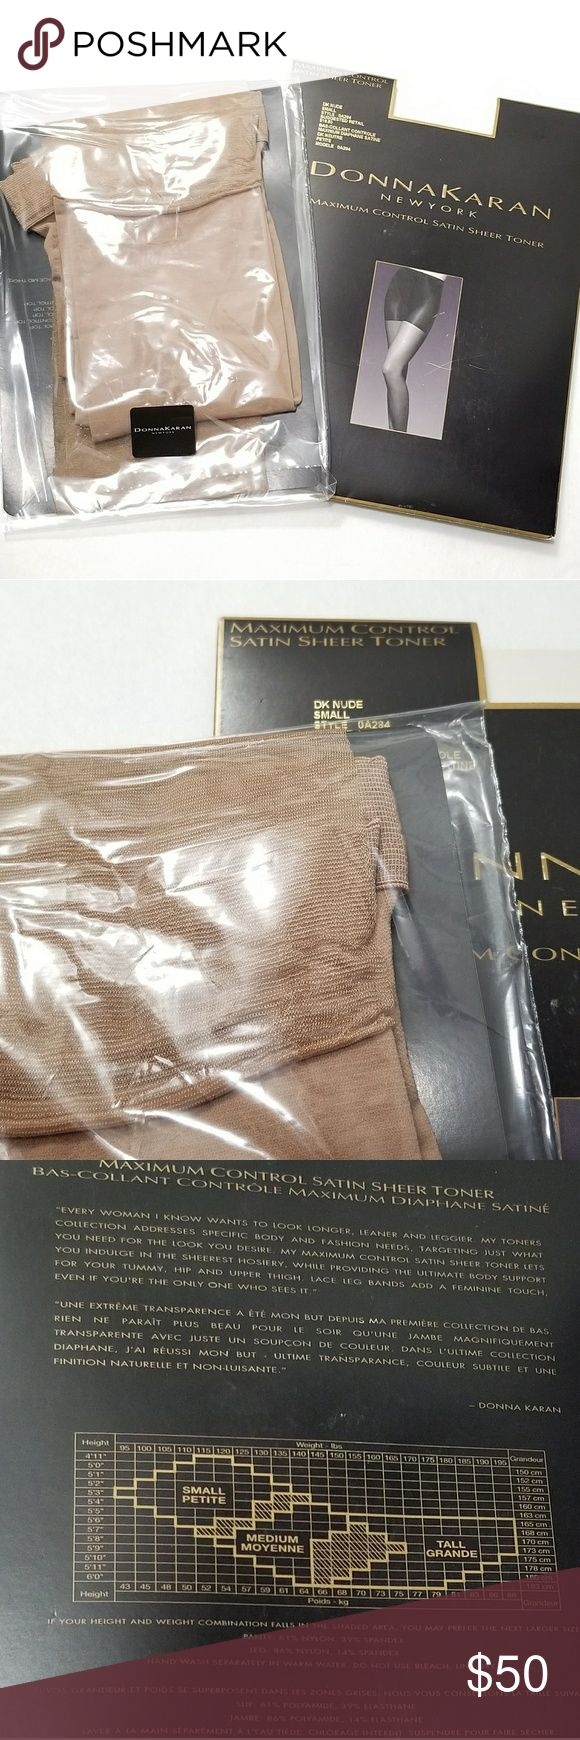 👢New Donna Karan Satin Sheer Sexy Hosiery Closet Clearance Item!  Discontinued Item Very Good Tights Very Sexy Longer, Leaner, Leggier Leg from Donna Karan New York Maximum Control Satin Sheer Toner. Brand new in original wraps. Size Small Petite. Please check picture 3 for details. Color Dark Nude. Only One. Closet Clearance Item. All Sales Final. Welcome bundle offer. Ship fast random gift :)  Earring on sale !! 4 Pairs for $20 Any Designs! Dkny Accessories Hosiery & Socks